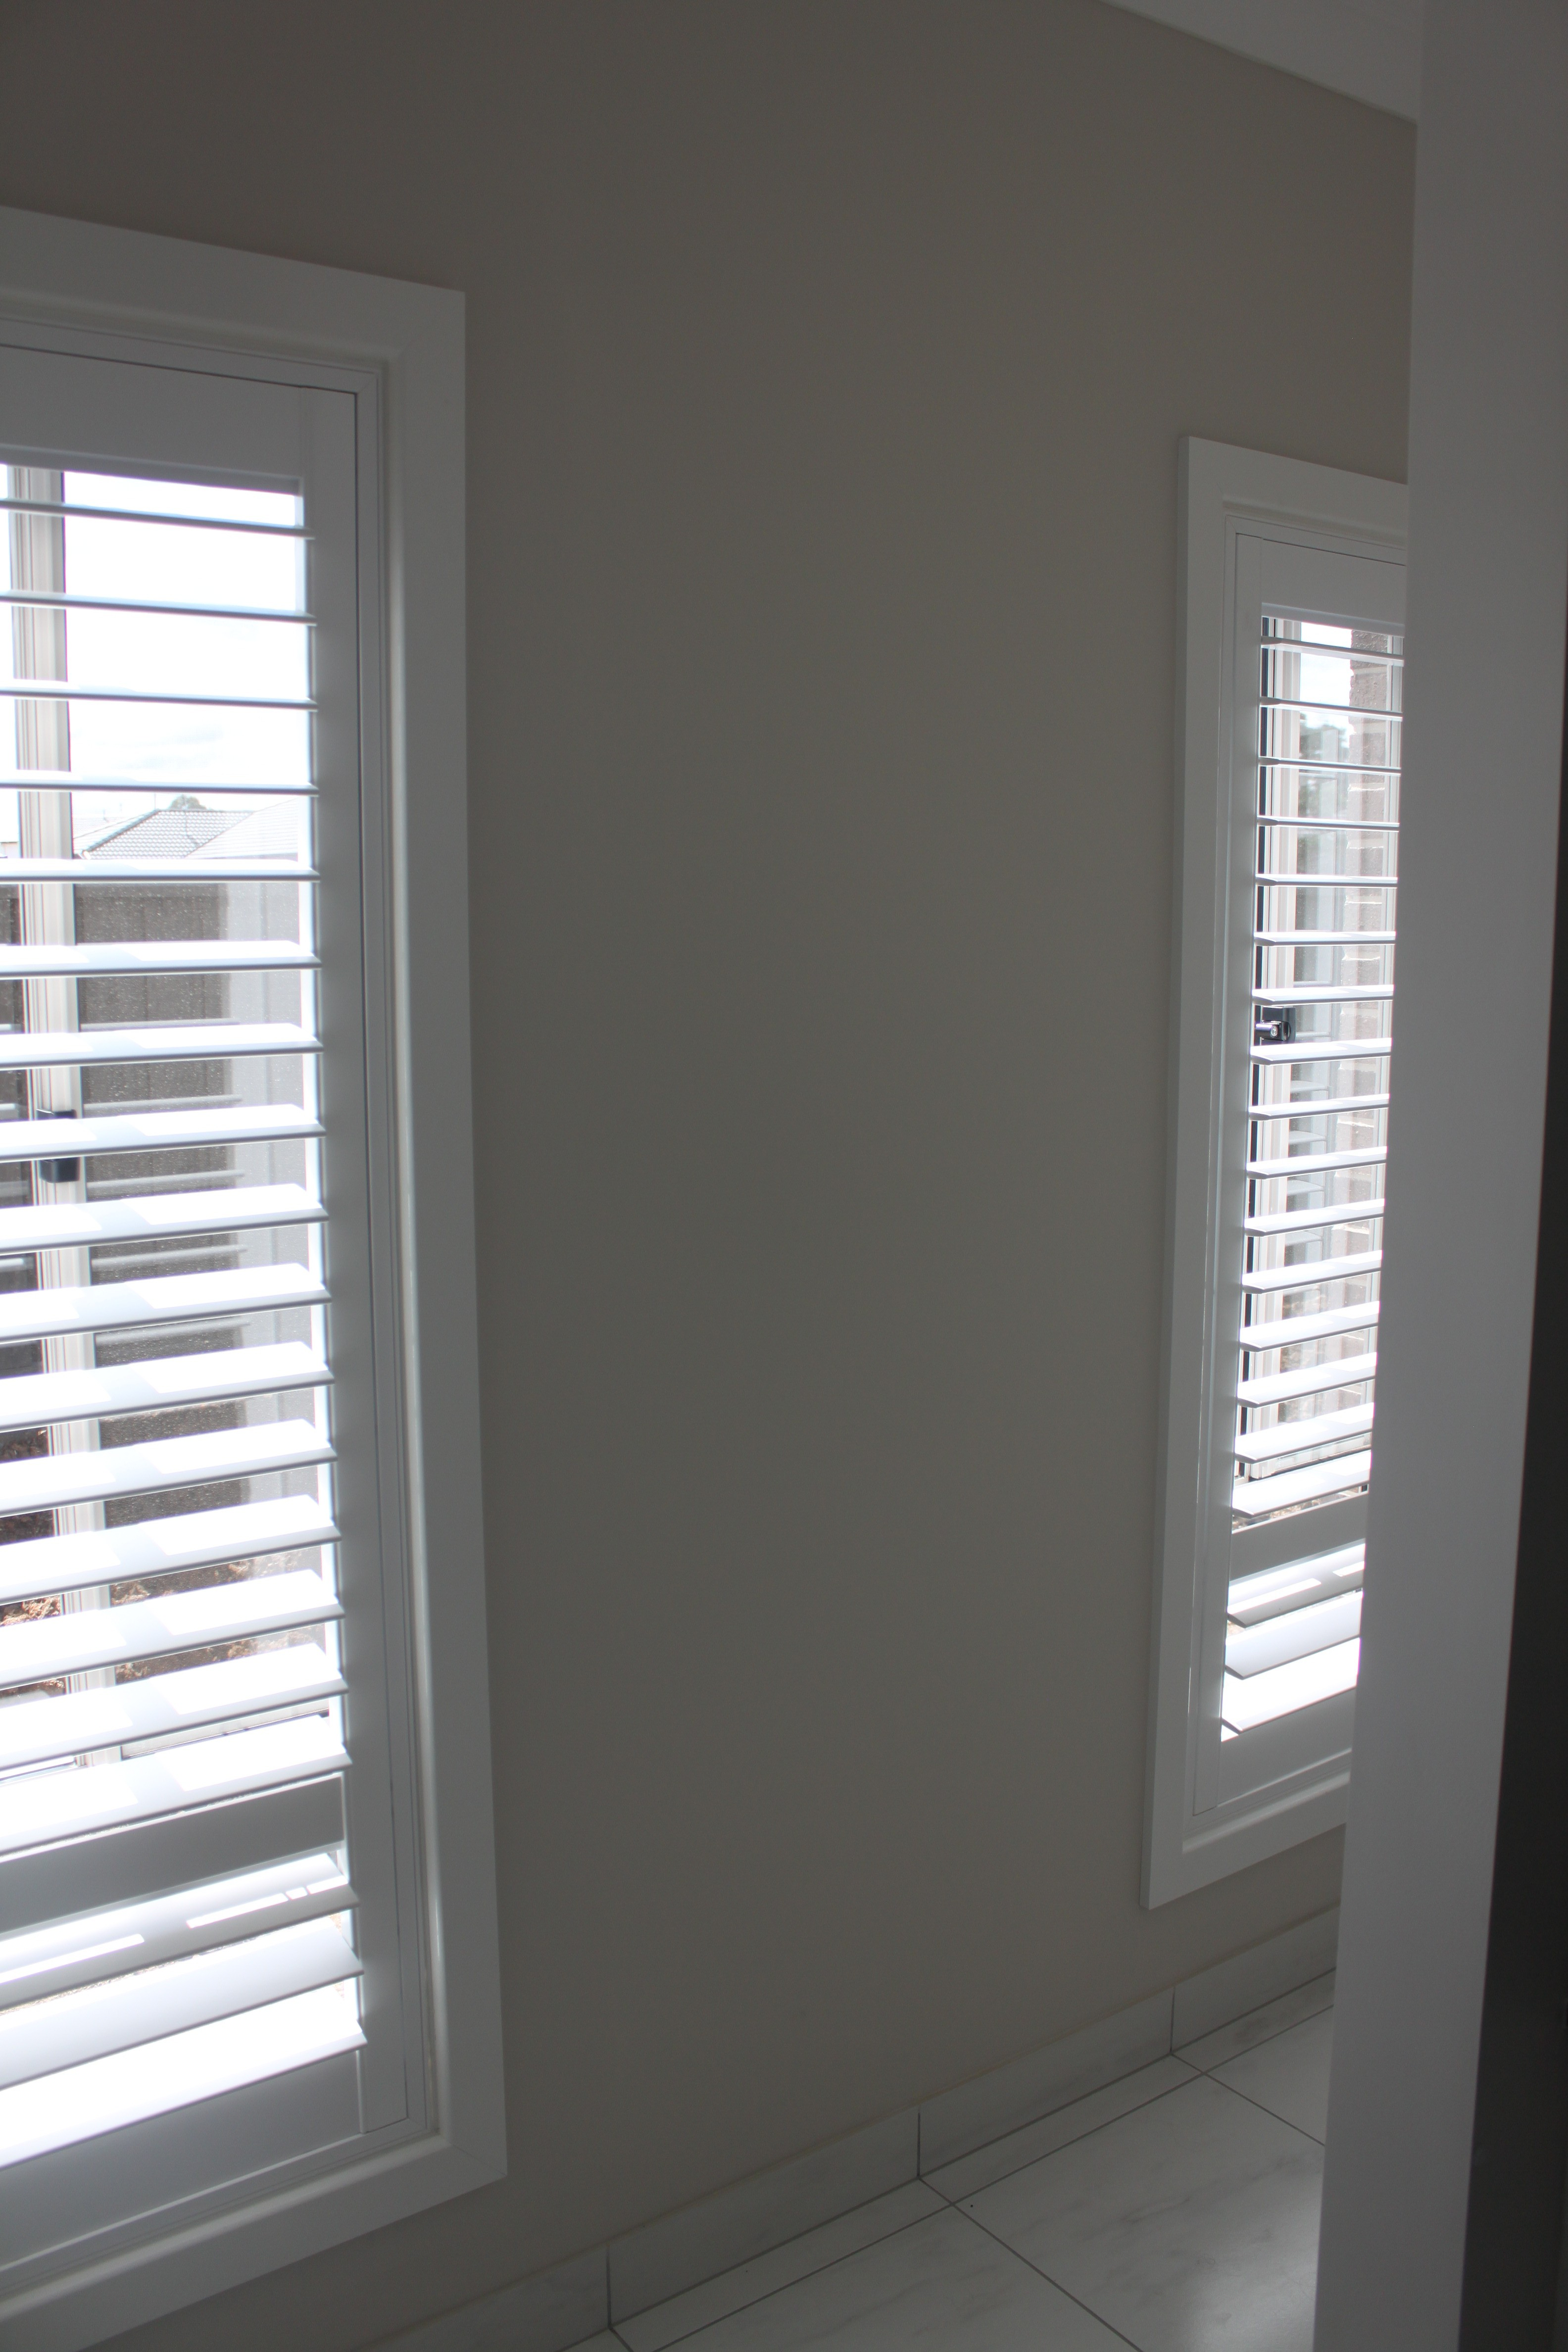 water plantation shutters for bathroom